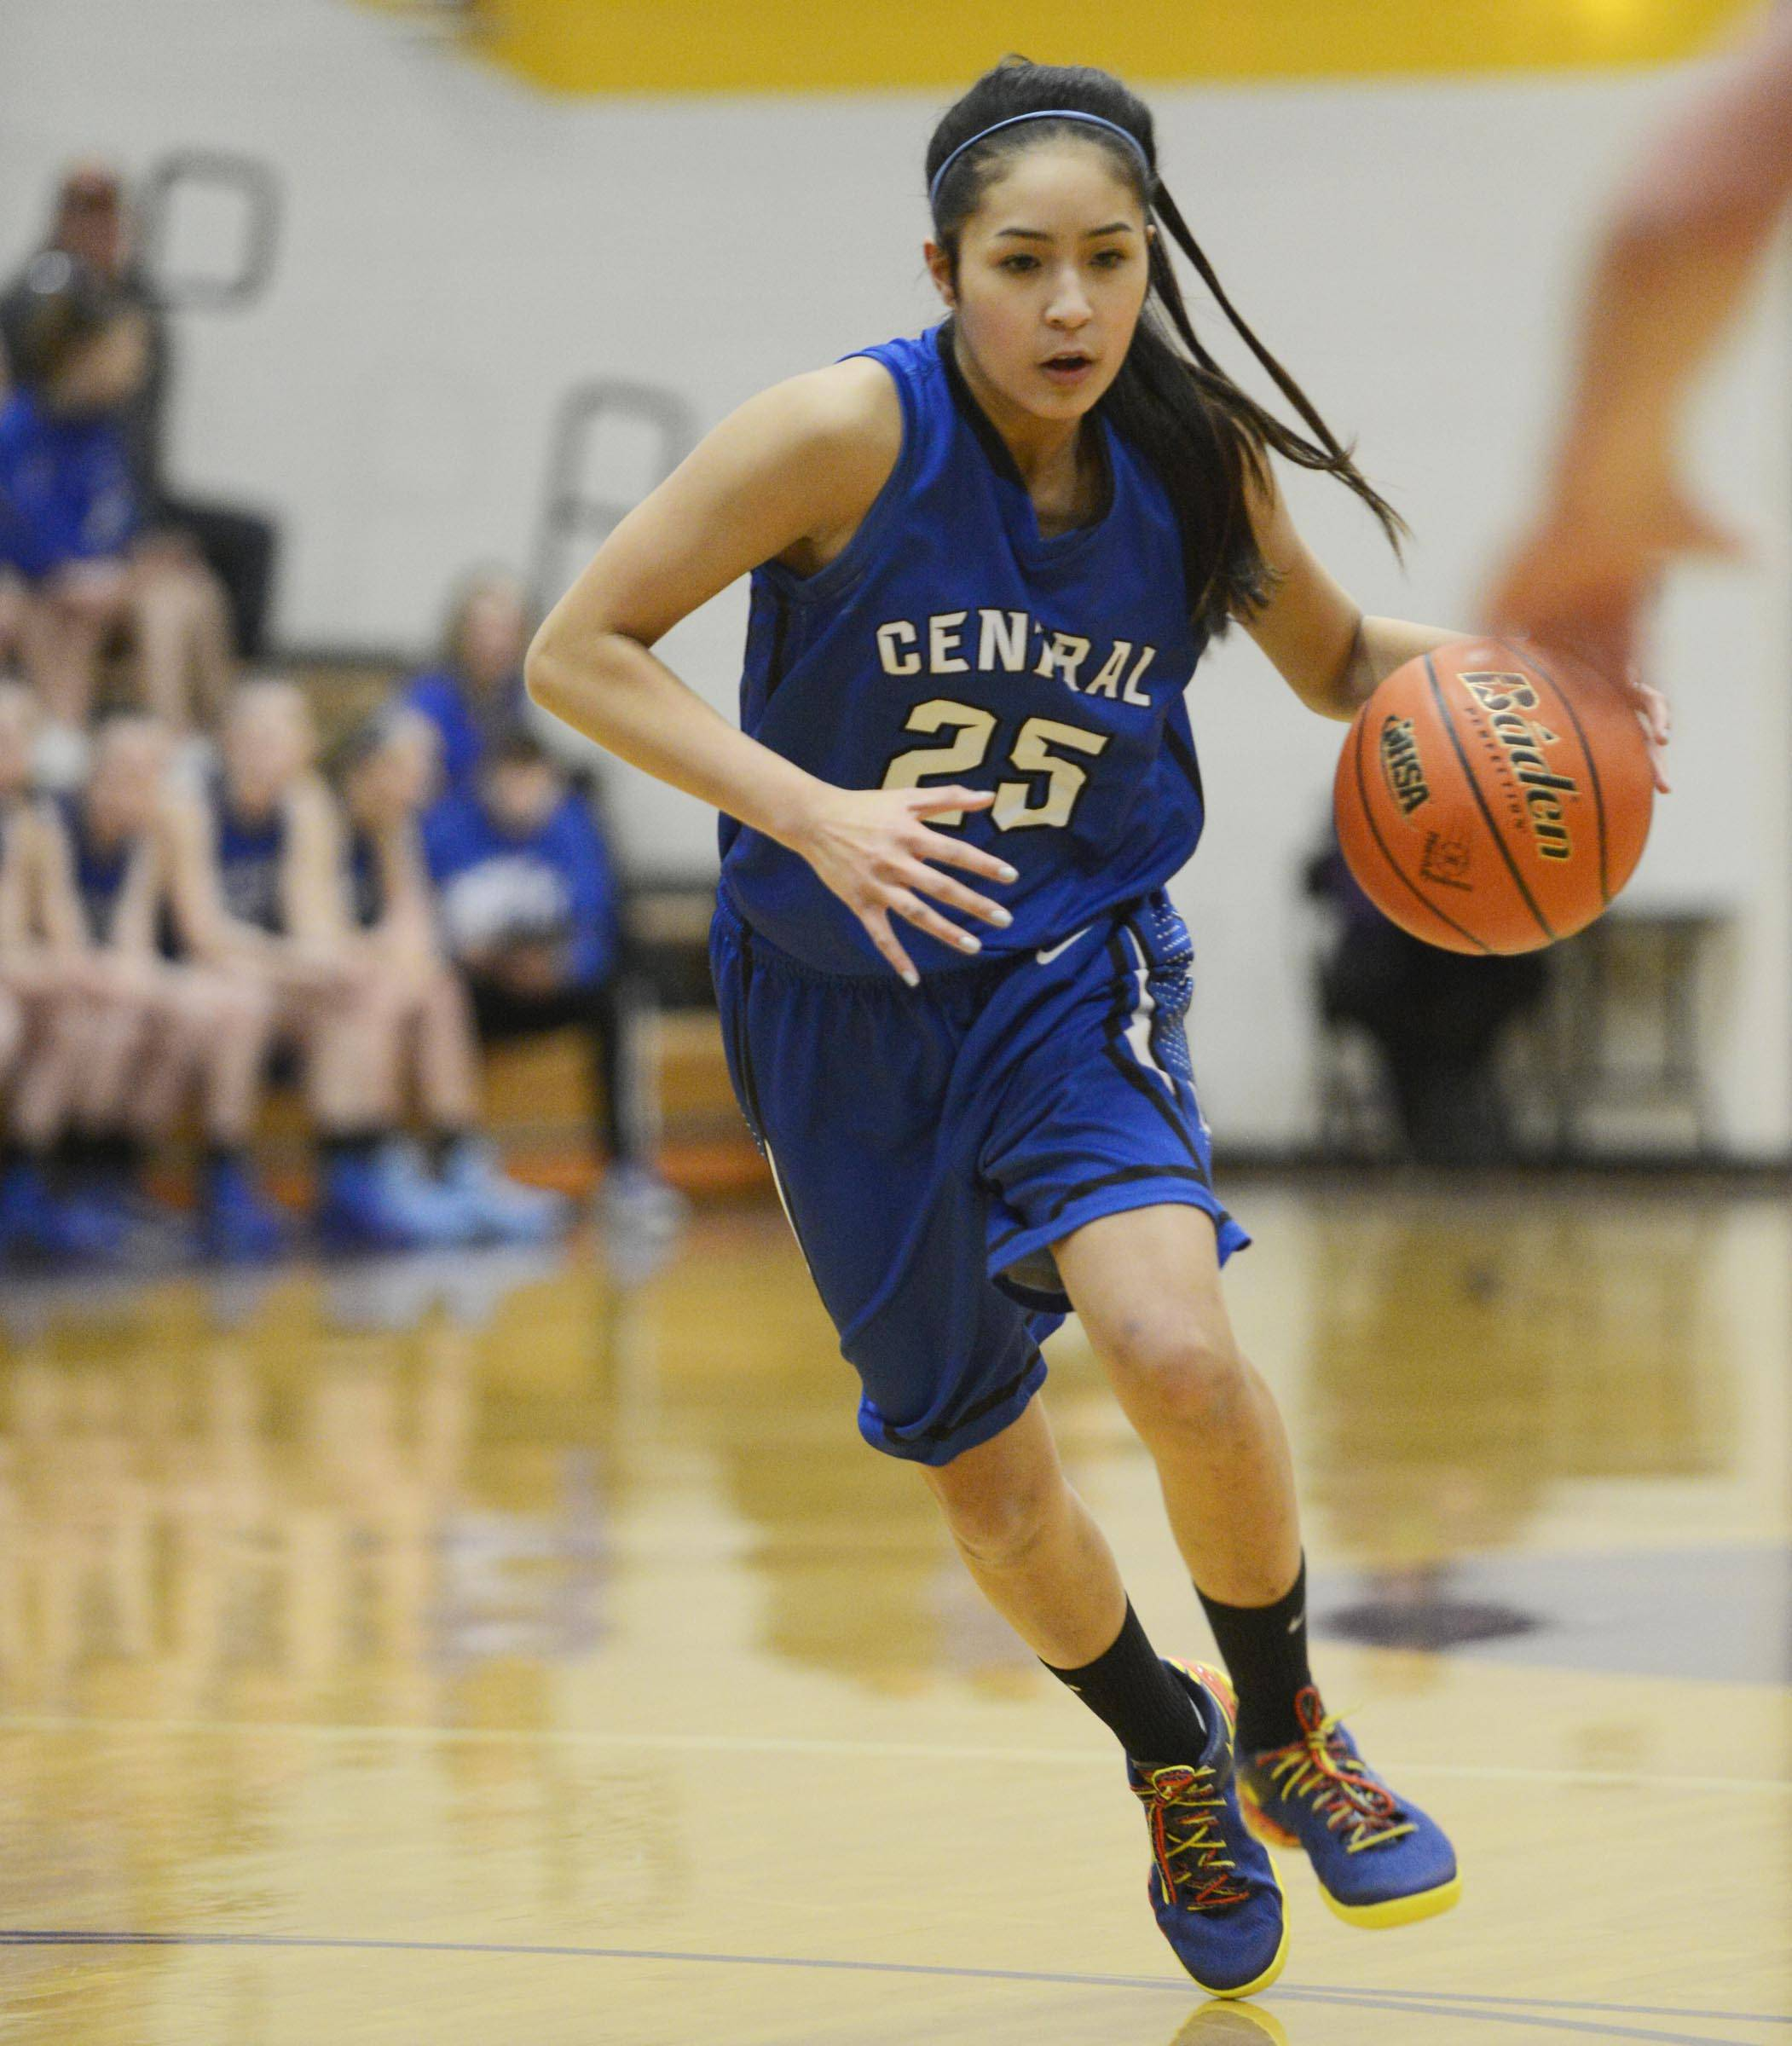 Images from the Burlington Central vs. Sycamore Class 3A sectional semifinal girls basketball game Monday night in Belvidere.